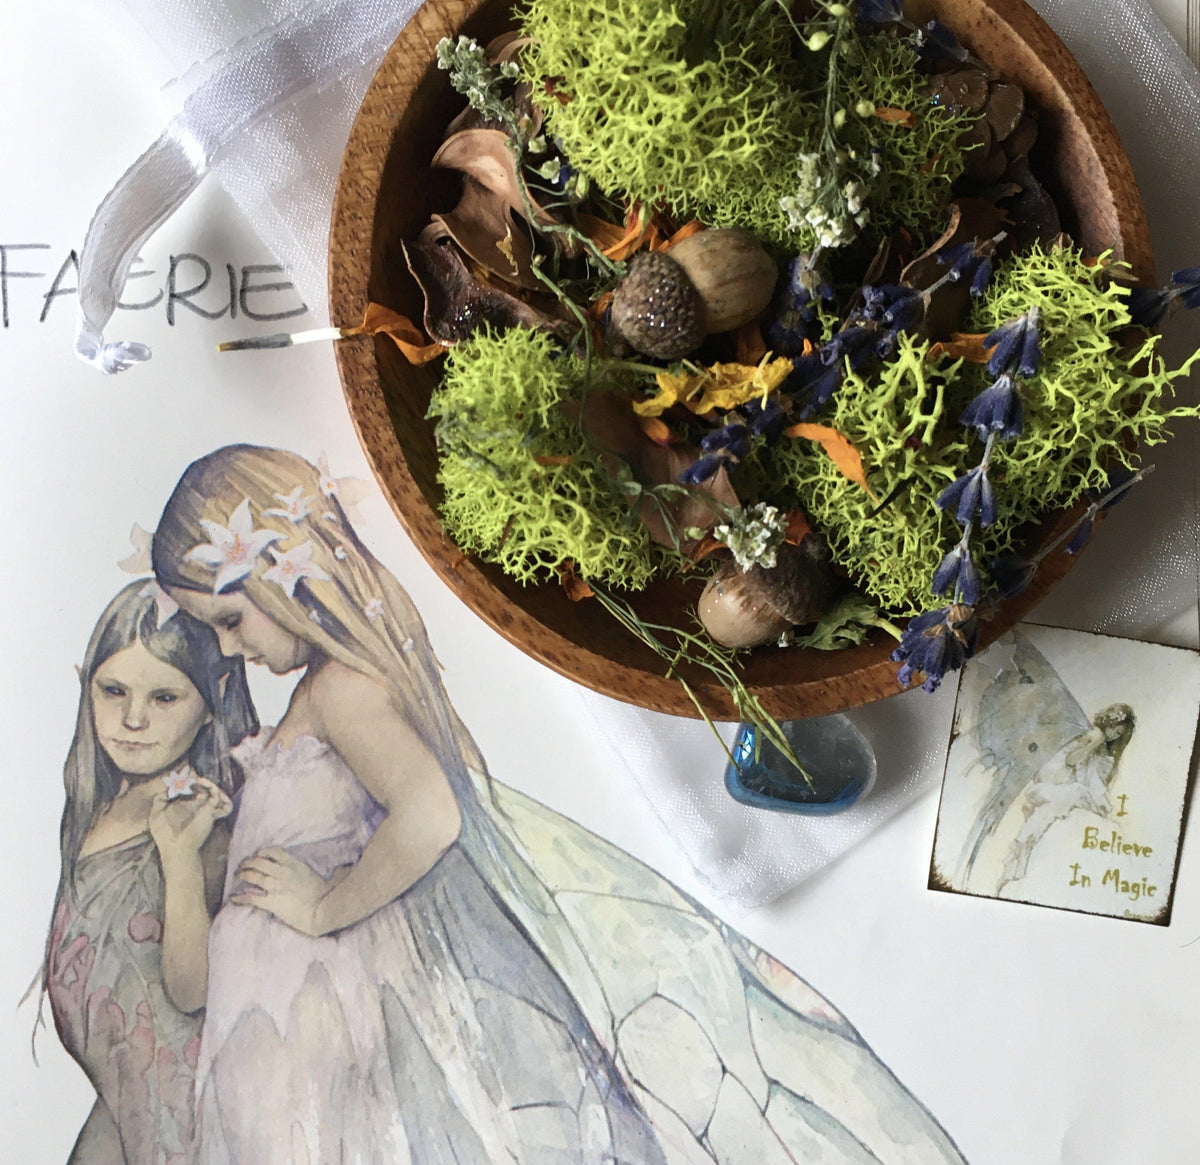 Flower Offering Blend for the Fae - Fairy offering with Aura Quartz Gemstone, Smudging/Incense - SugarMuses